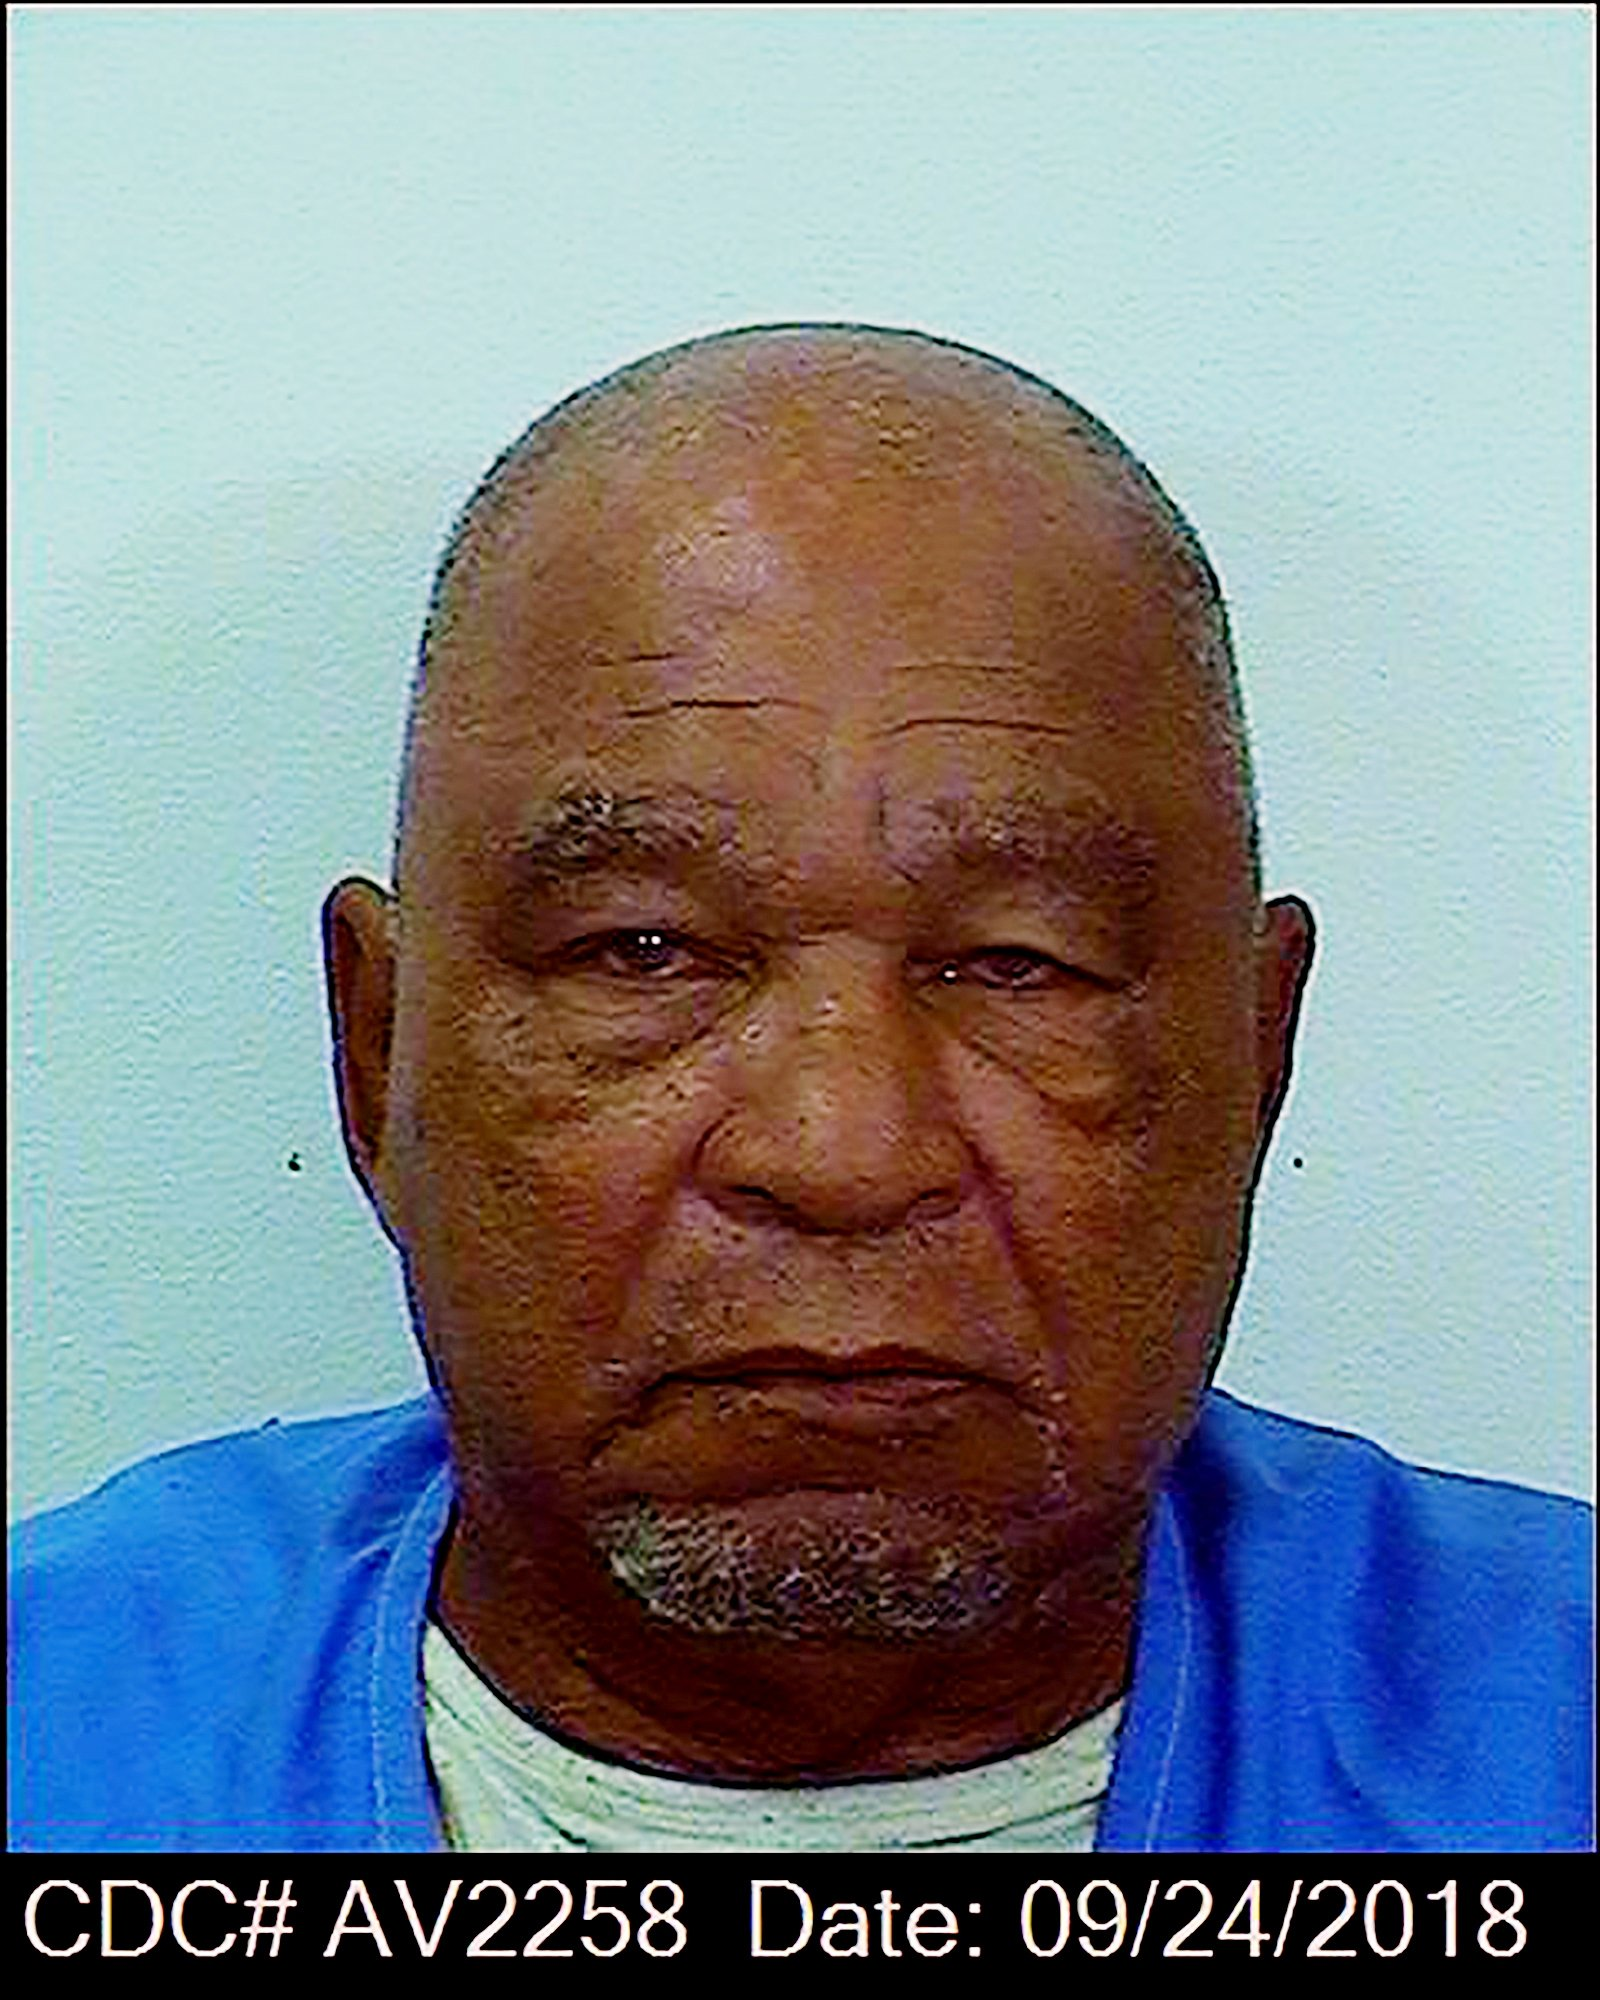 This booking photo provided by the California Department of Corrections shows Samuel Little, Sept. 24, 2018. (AP Photo)